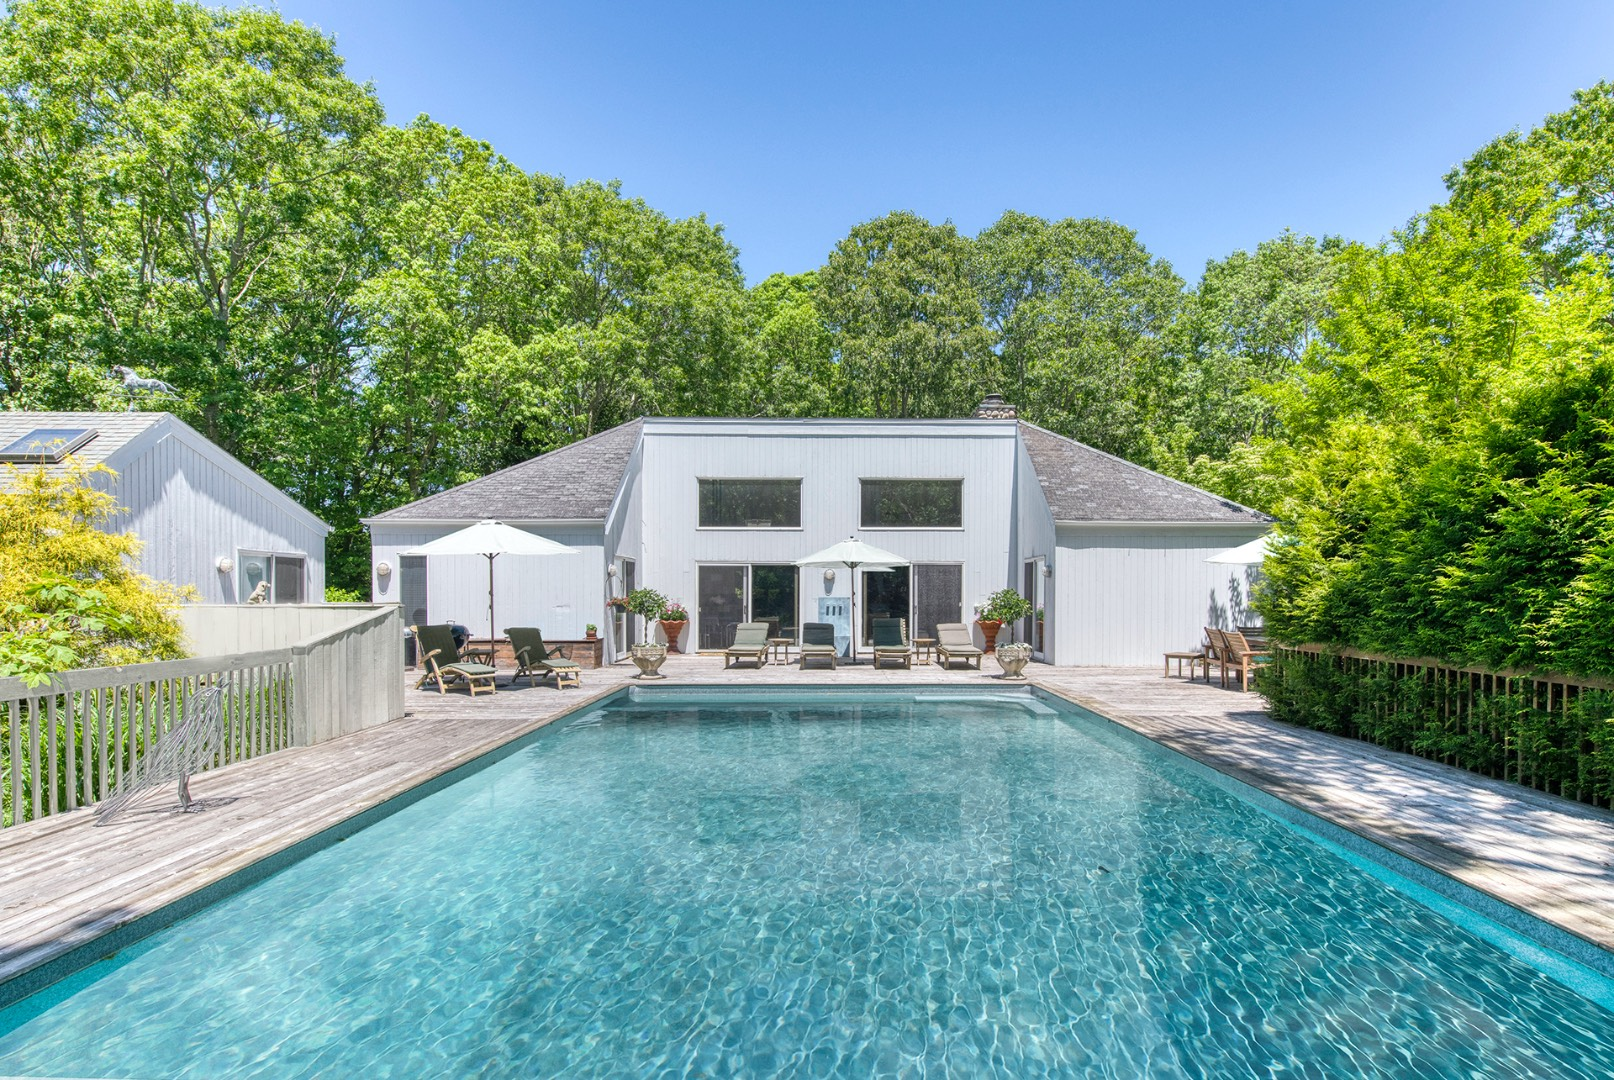 72 Wainscott Northwest Road